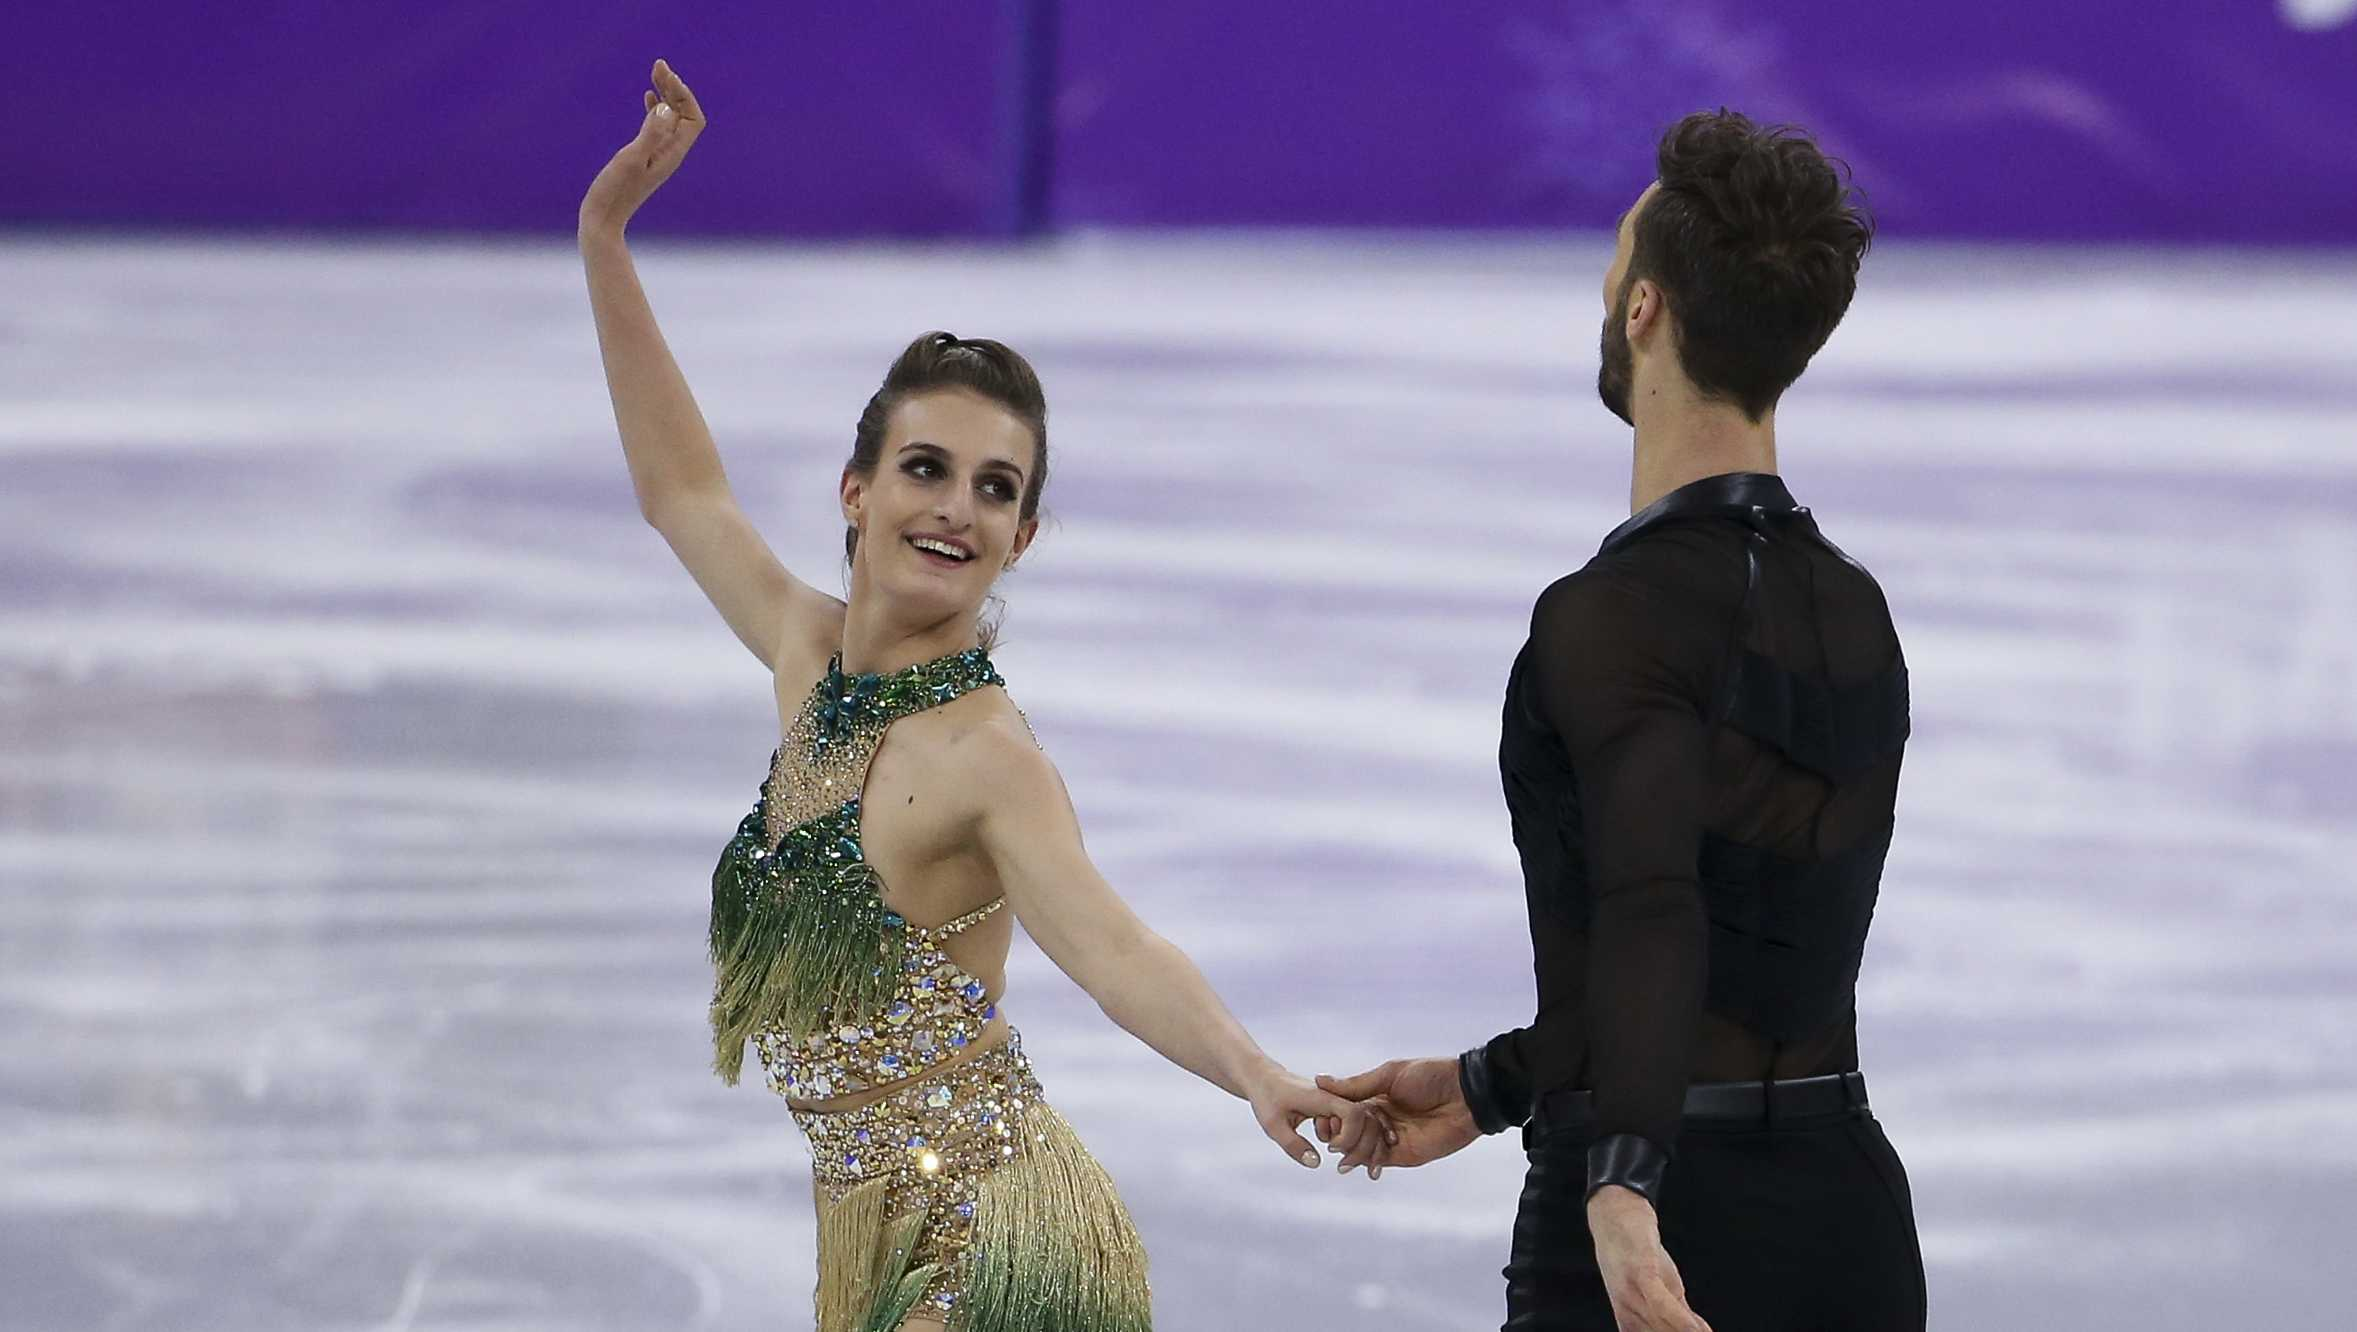 Gabriella Papadakis and Guillaume Cizeron of France during the Figure Skating Ice Dance Short Dance program on day ten of the PyeongChang 2018 Winter Olympic Games at Gangneung Ice Arena on February 19, 2018 in Gangneung, South Korea.